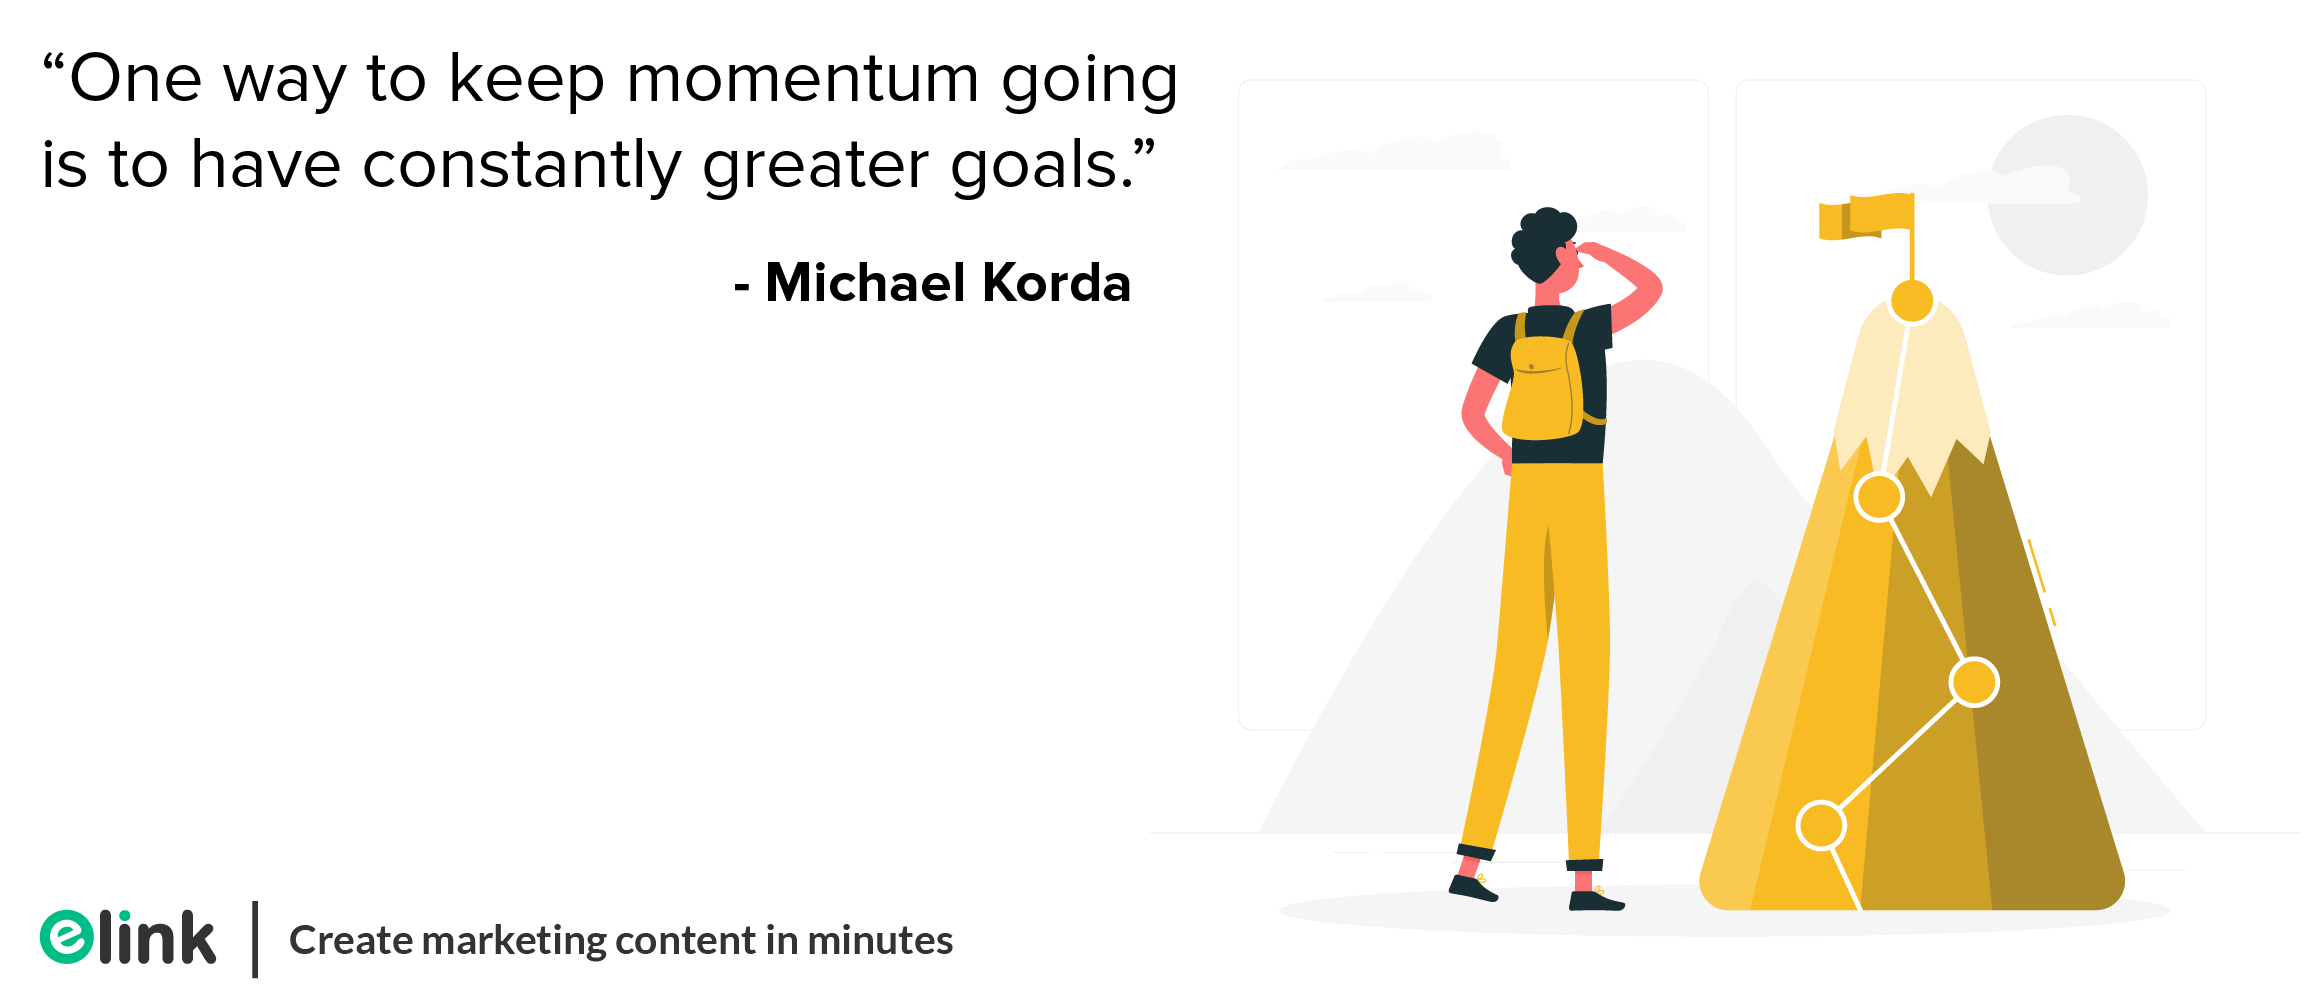 """One way to keep momentum going is to have constantly greater goals."" - Michael Korda elink.io"